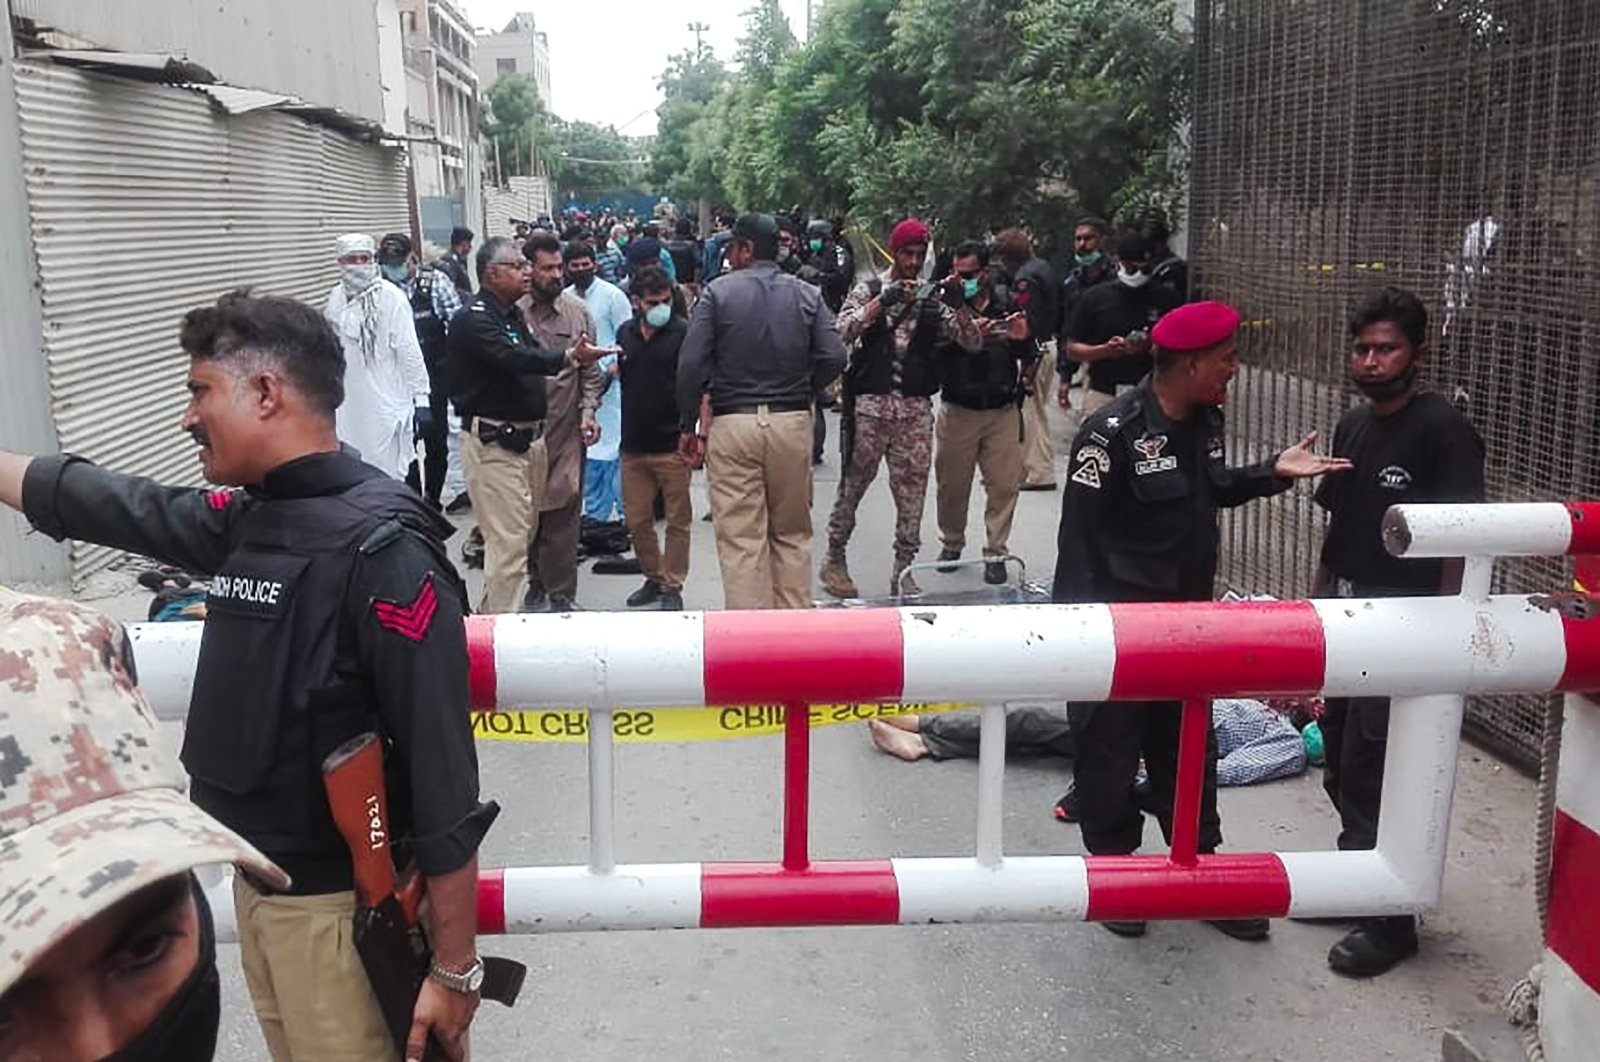 Police secure an area around a body outside the Pakistan Stock Exchange building after a group of gunmen attacked the building in Karachi, Pakistan, June 29, 2020. (AFP Photo)